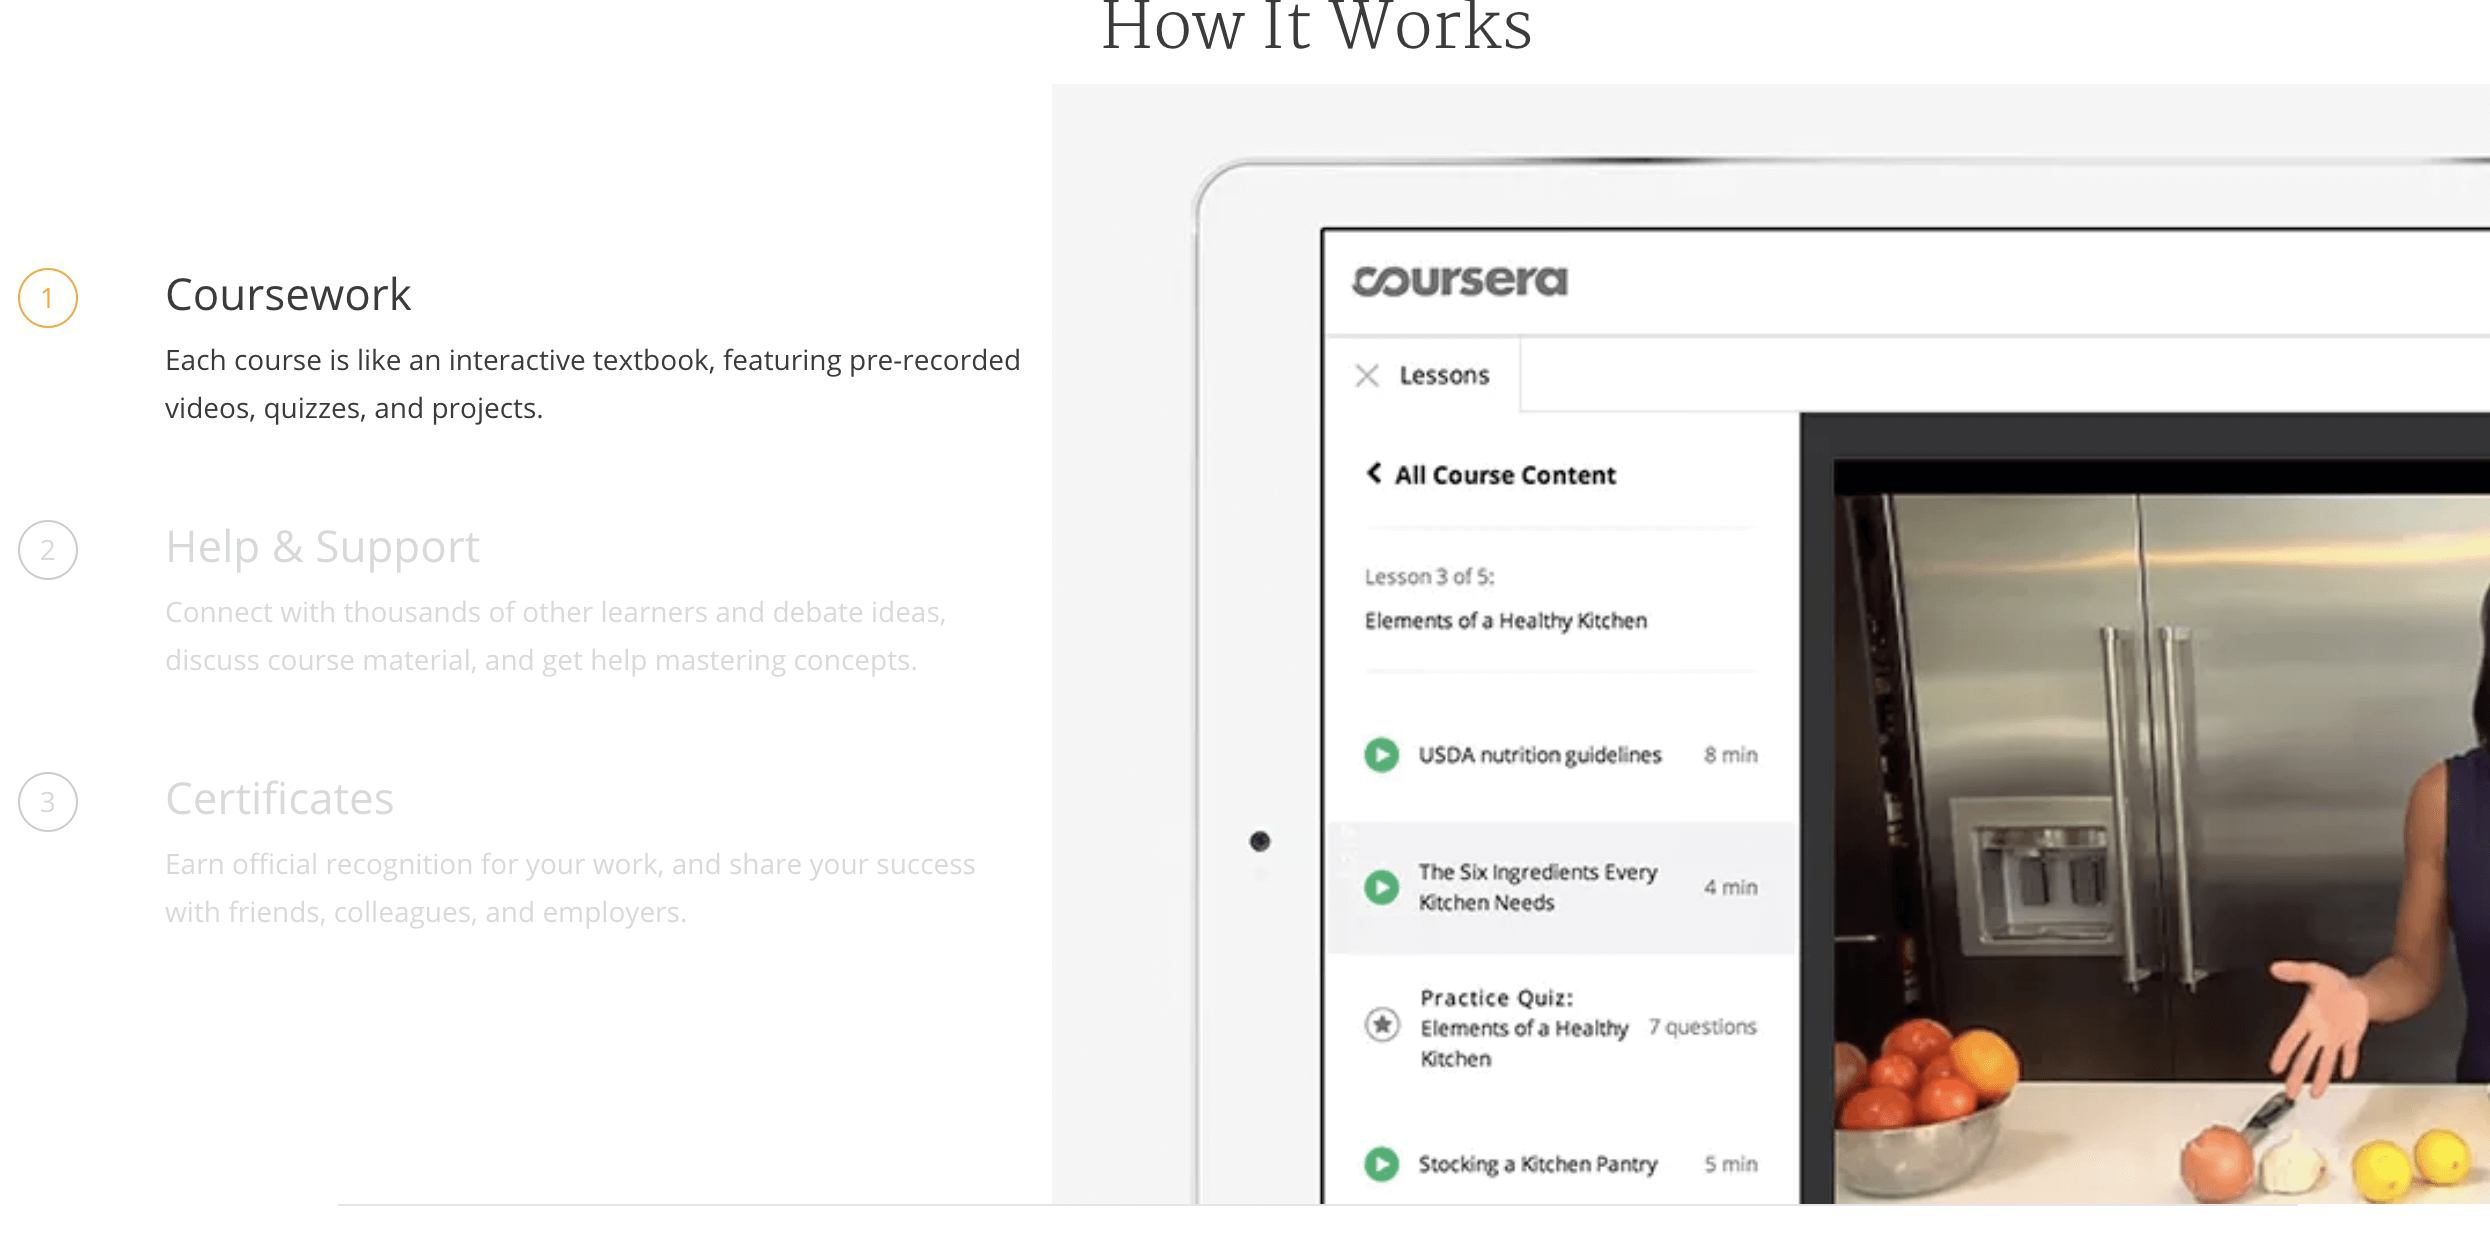 How it works section on Coursera's website